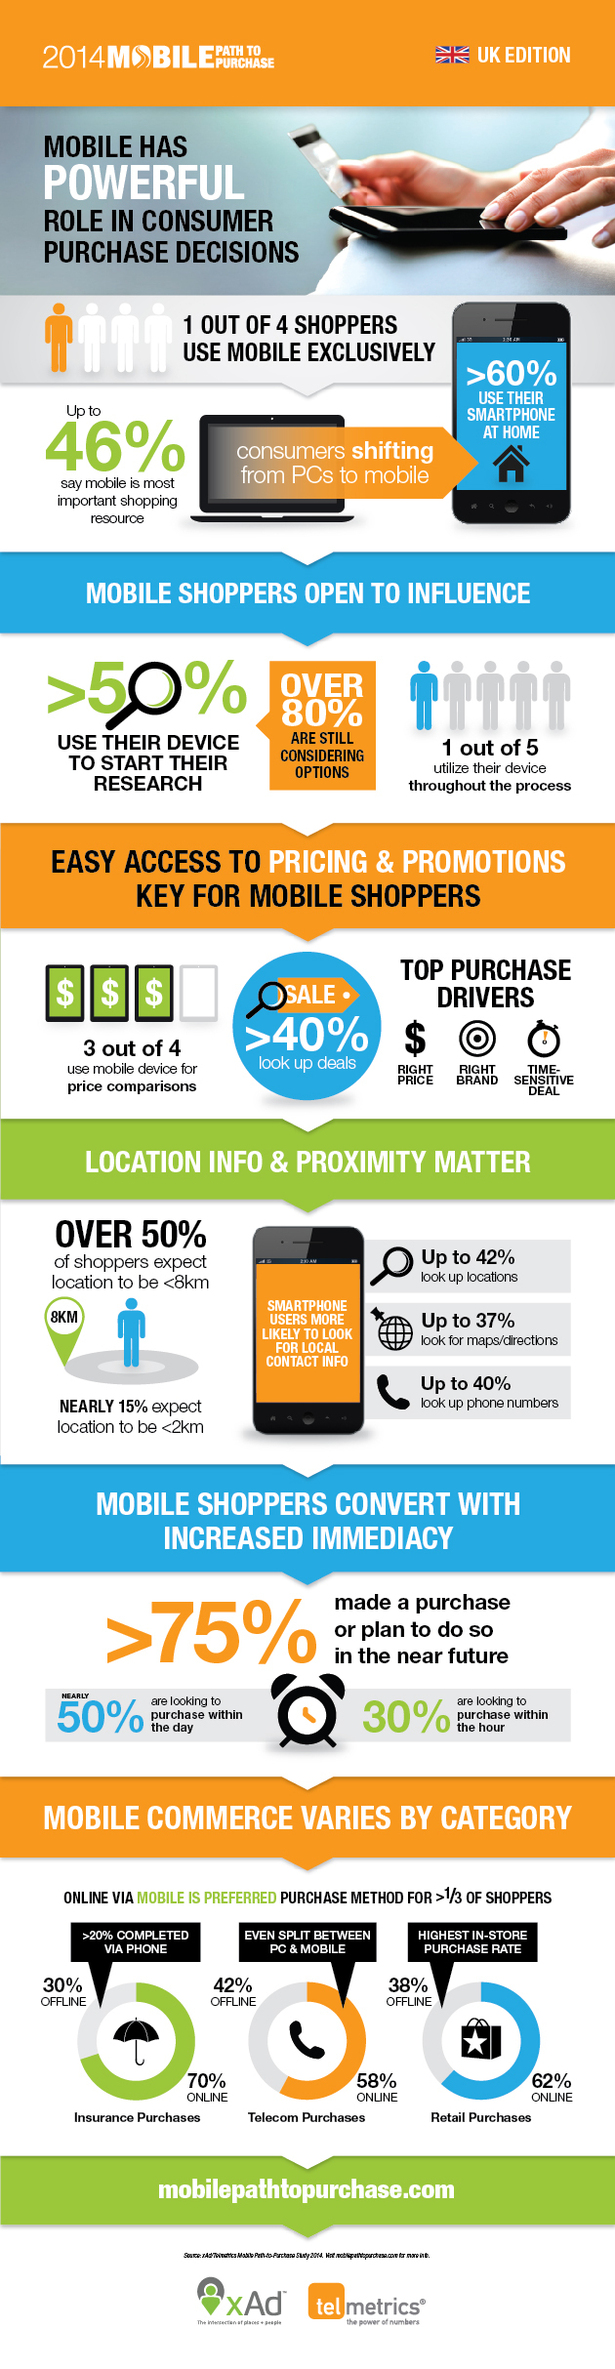 mobile path to purchase infographic